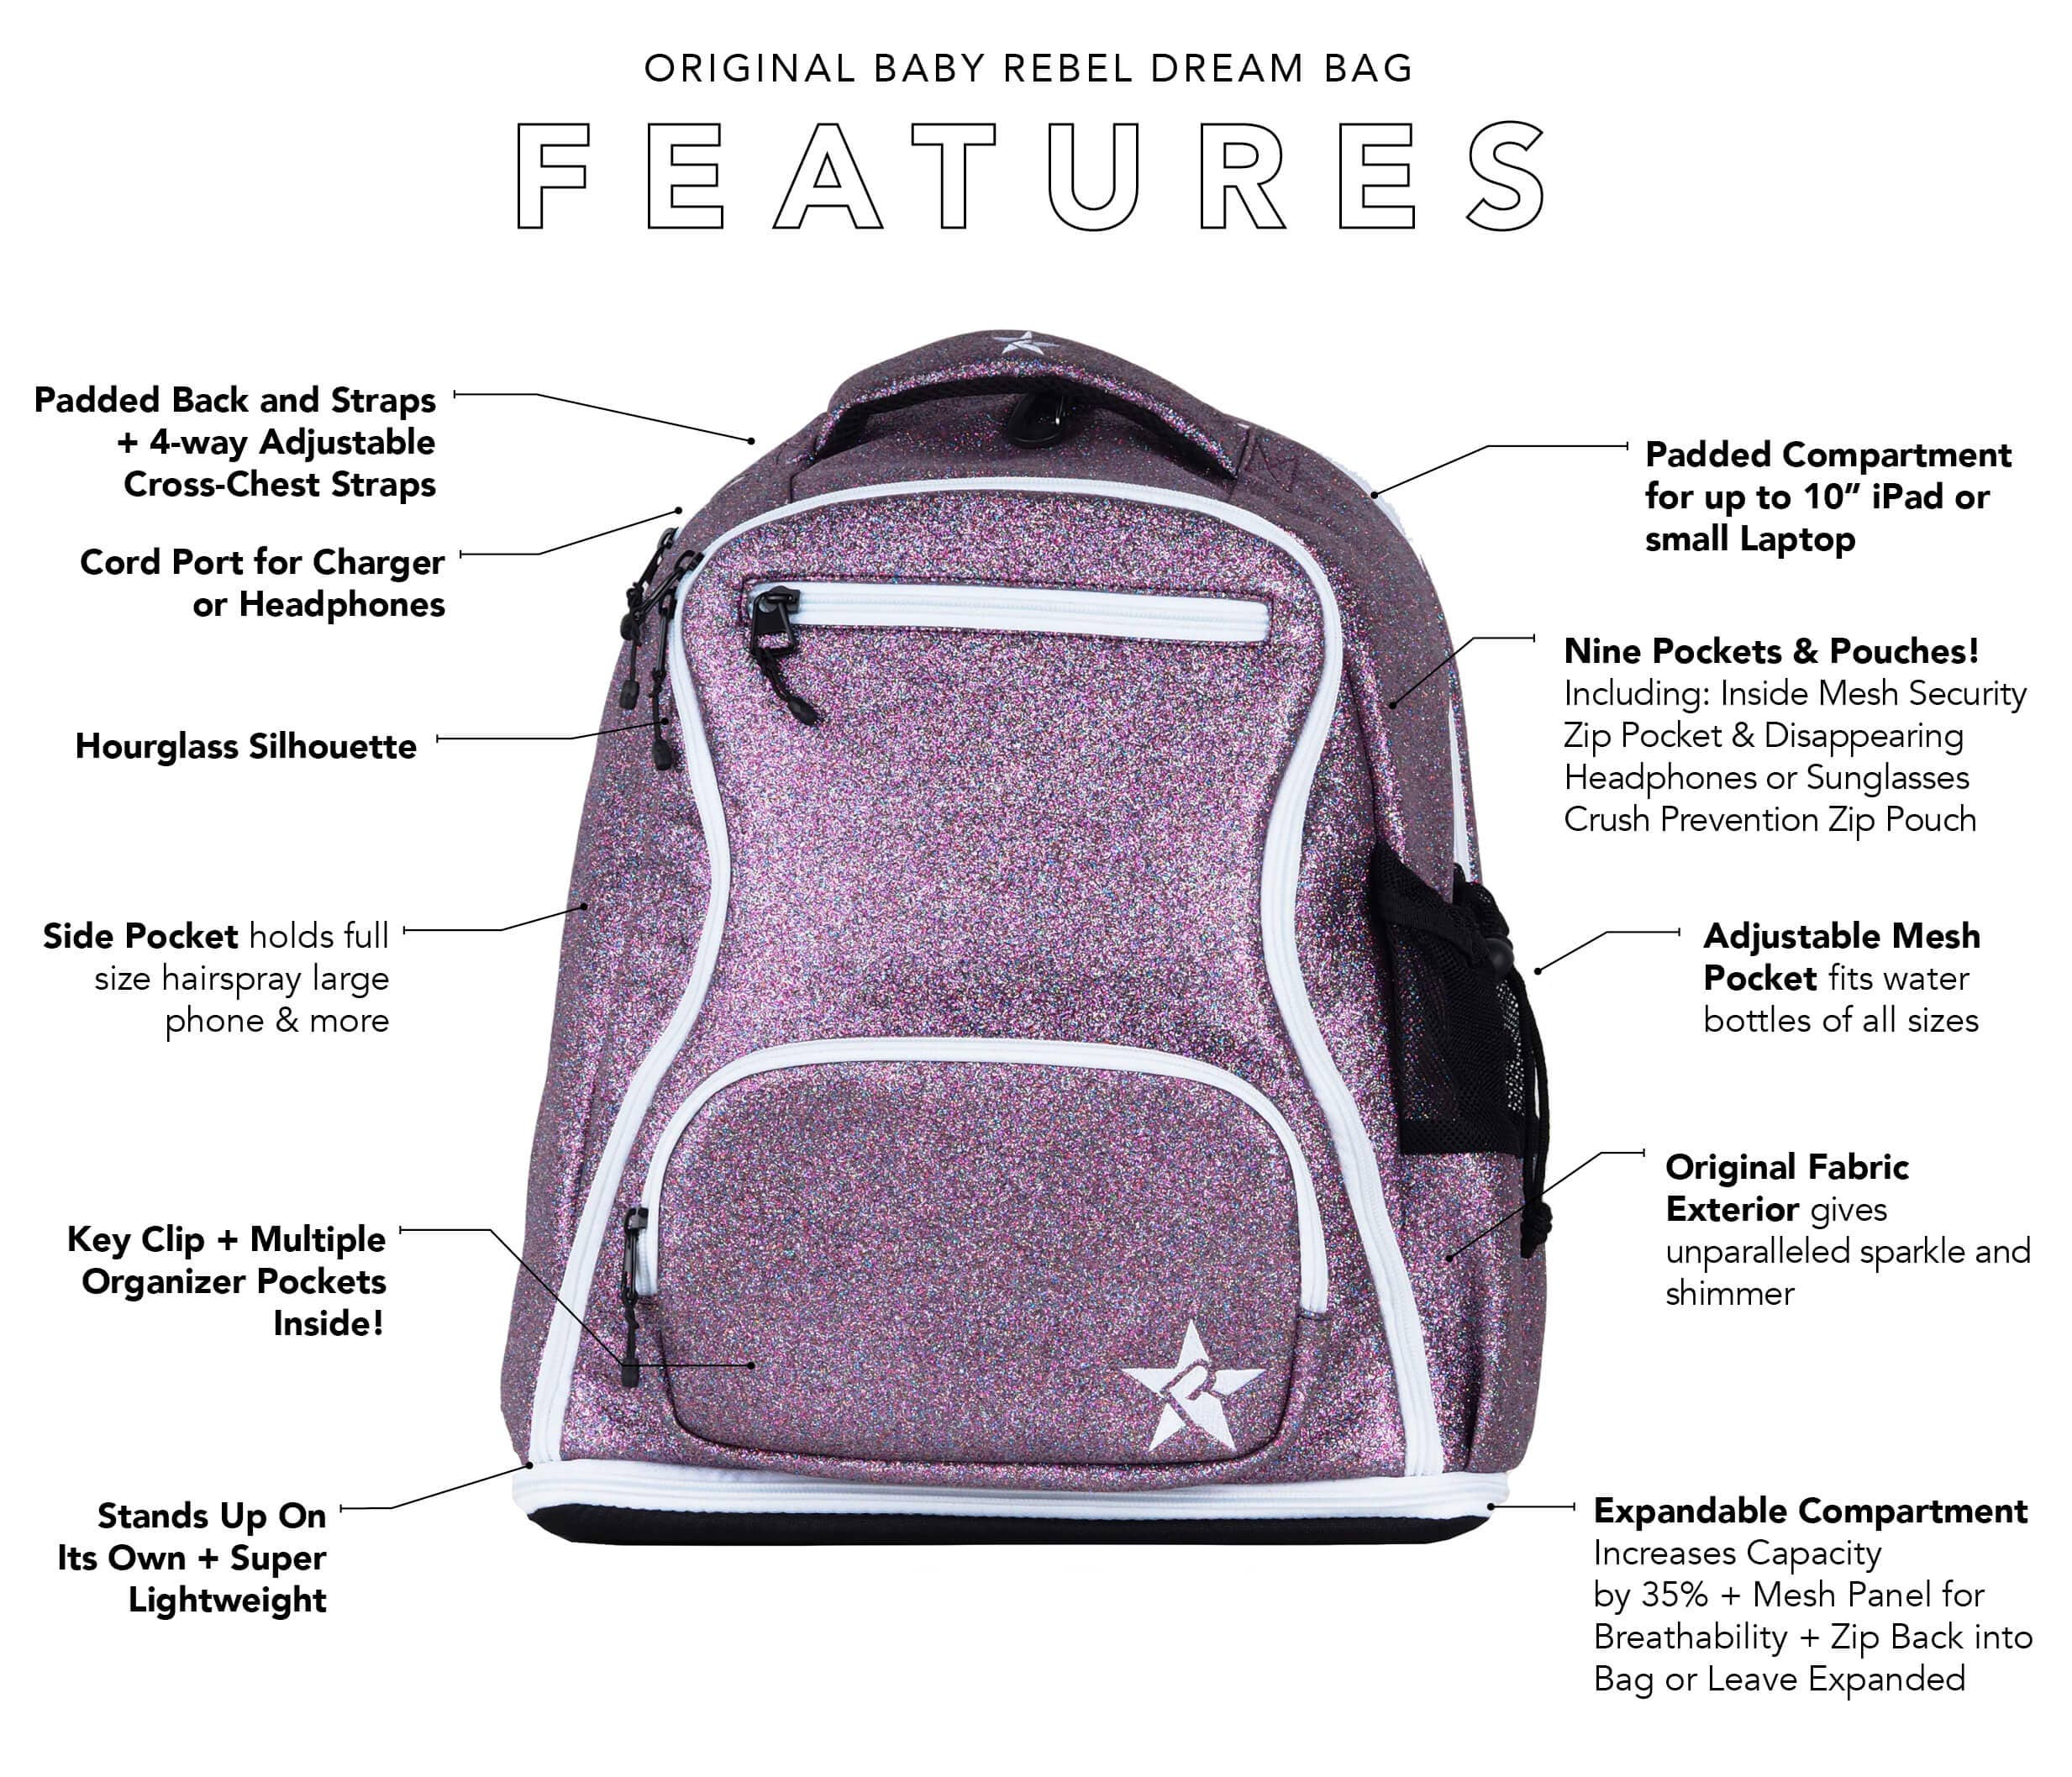 opalescent baby dream bag main features